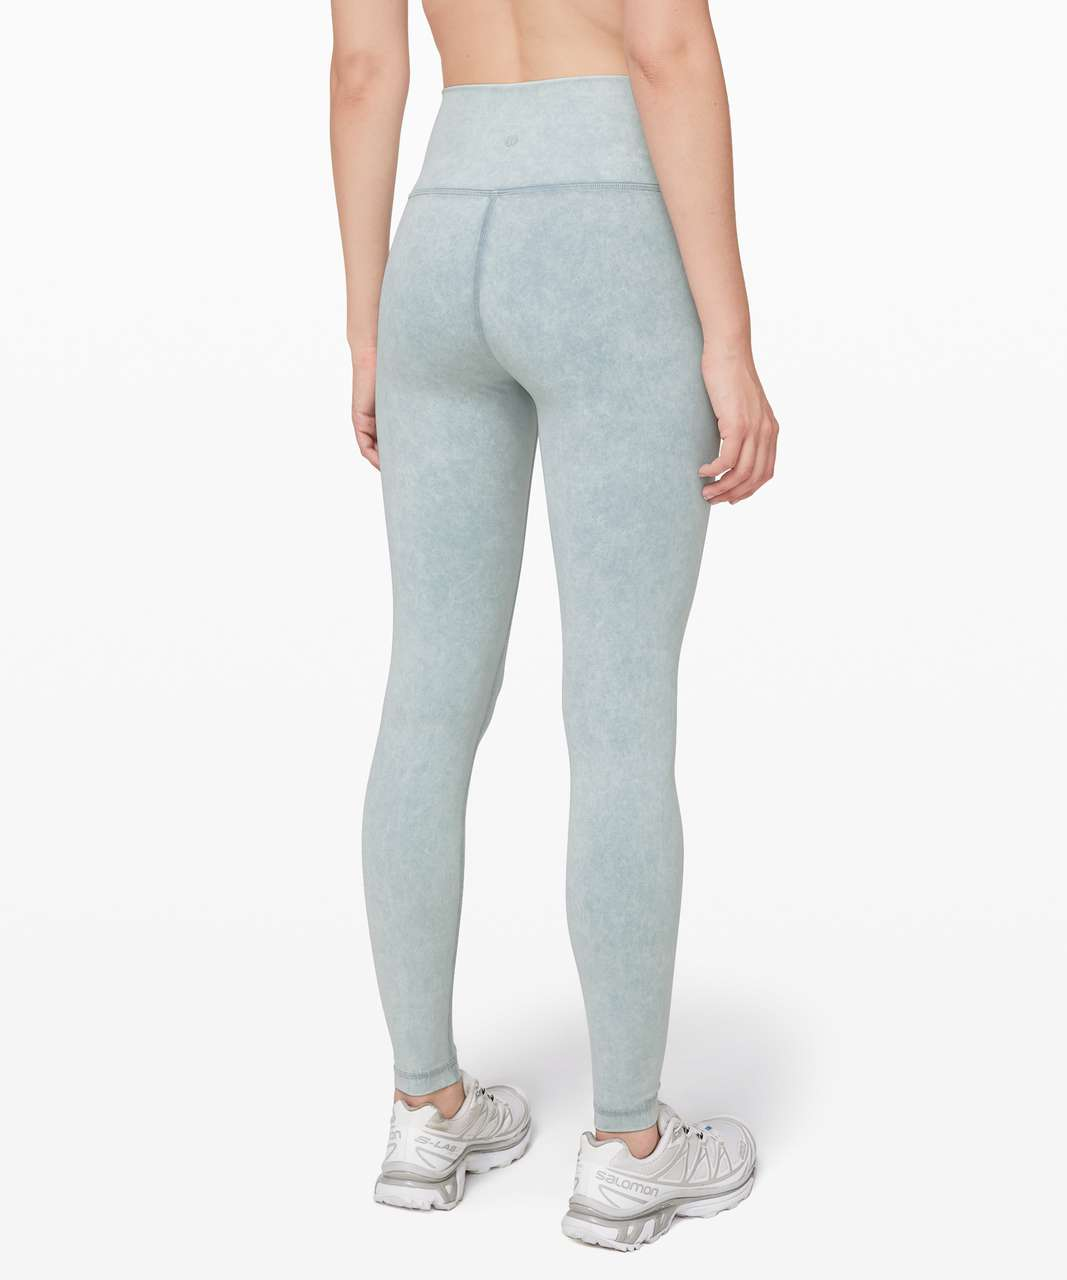 "Lululemon Wunder Under High-Rise Tight *Snow Washed 28"" - Washed Chambray"